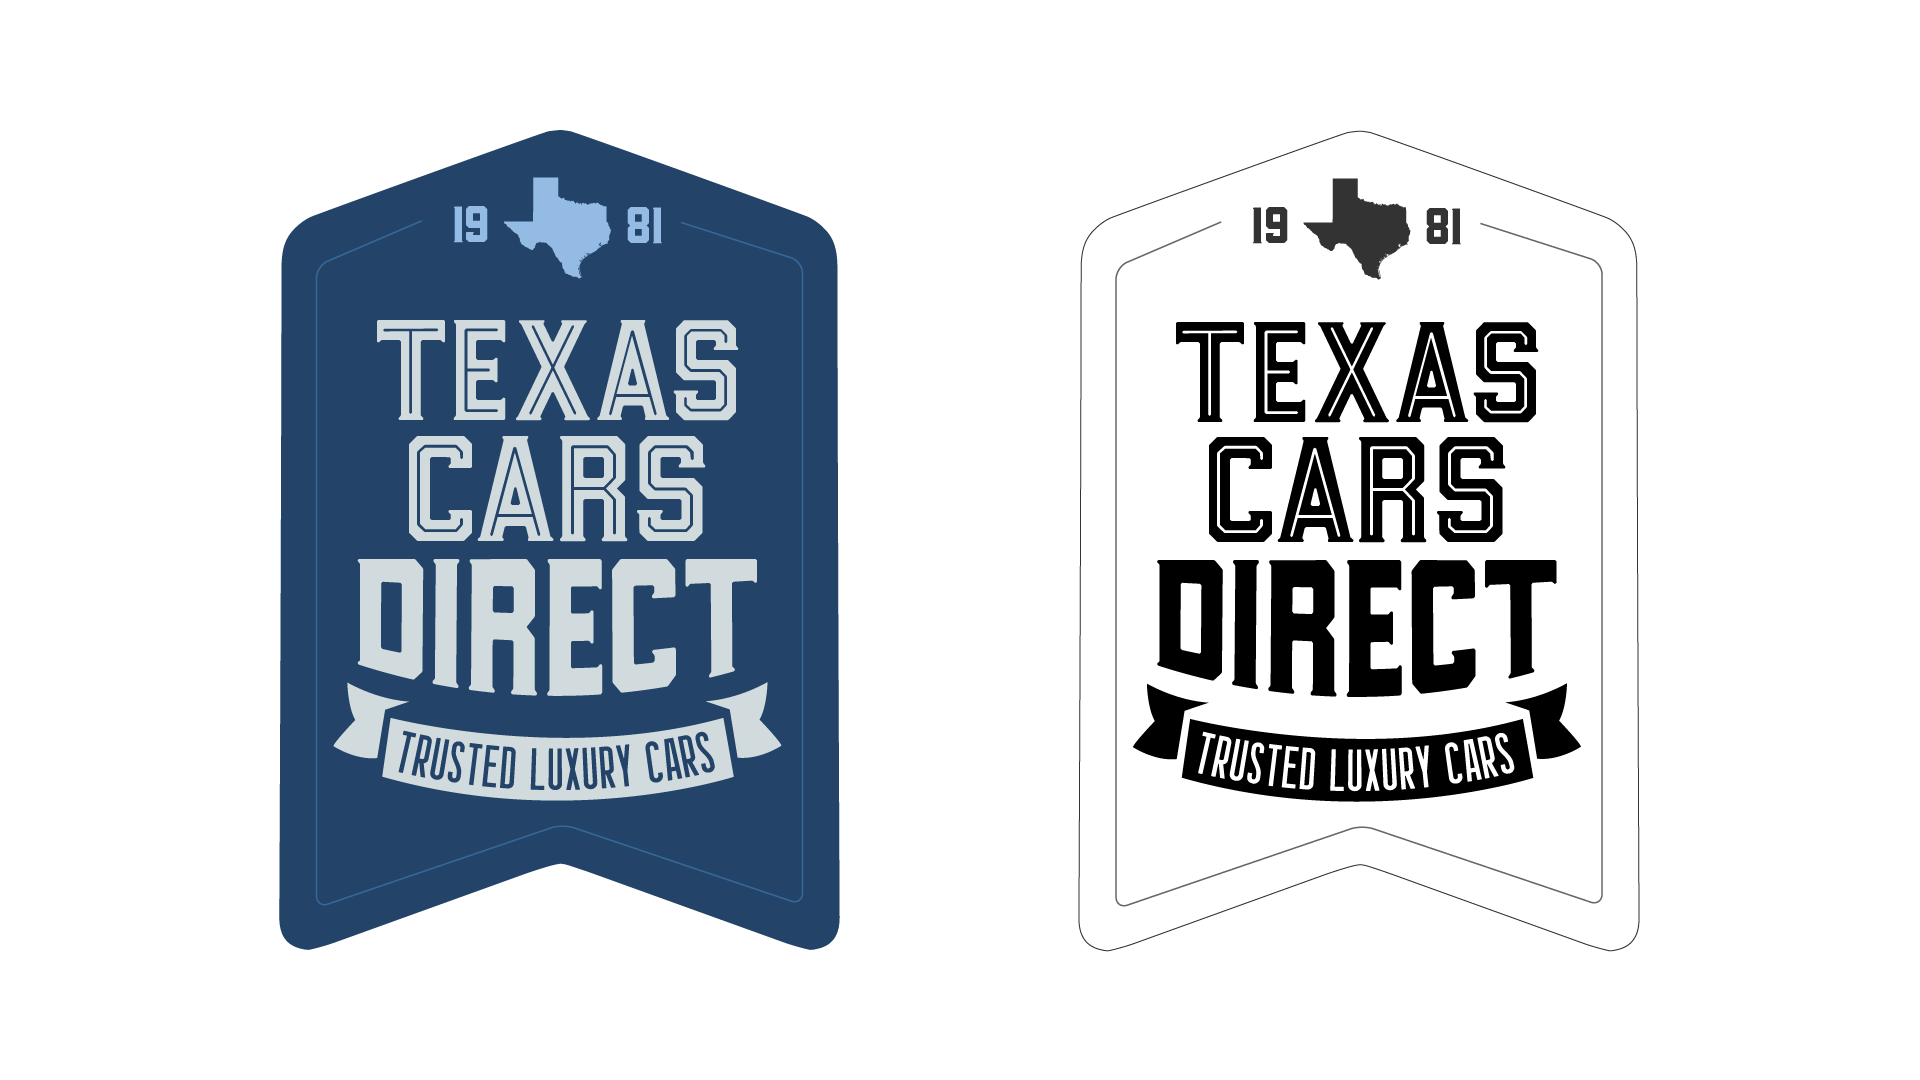 Texas Cars Direct — Brand ID, Logo Design